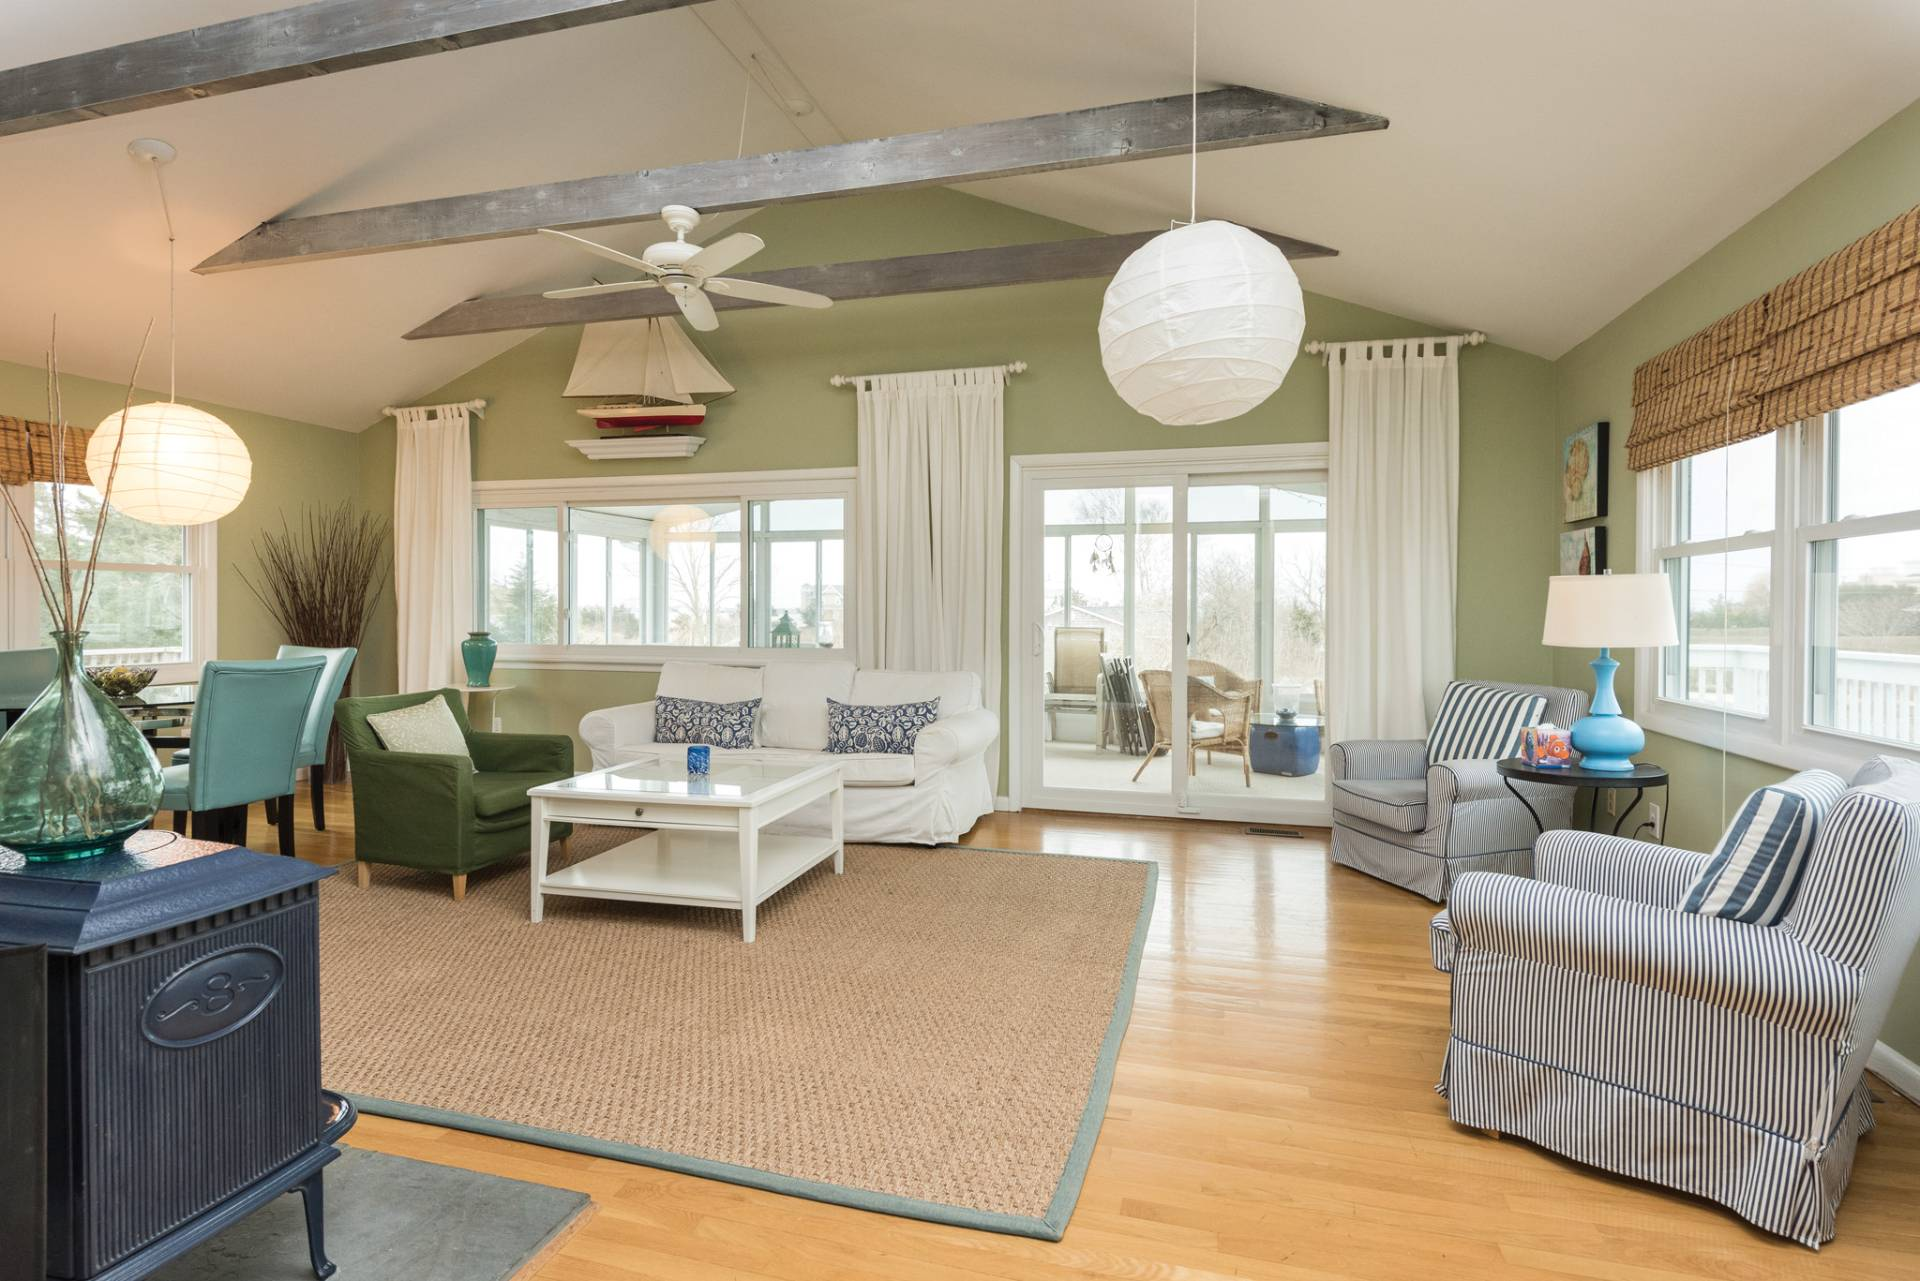 Additional photo for property listing at Beach House With A Pool  Westhampton, Nueva York